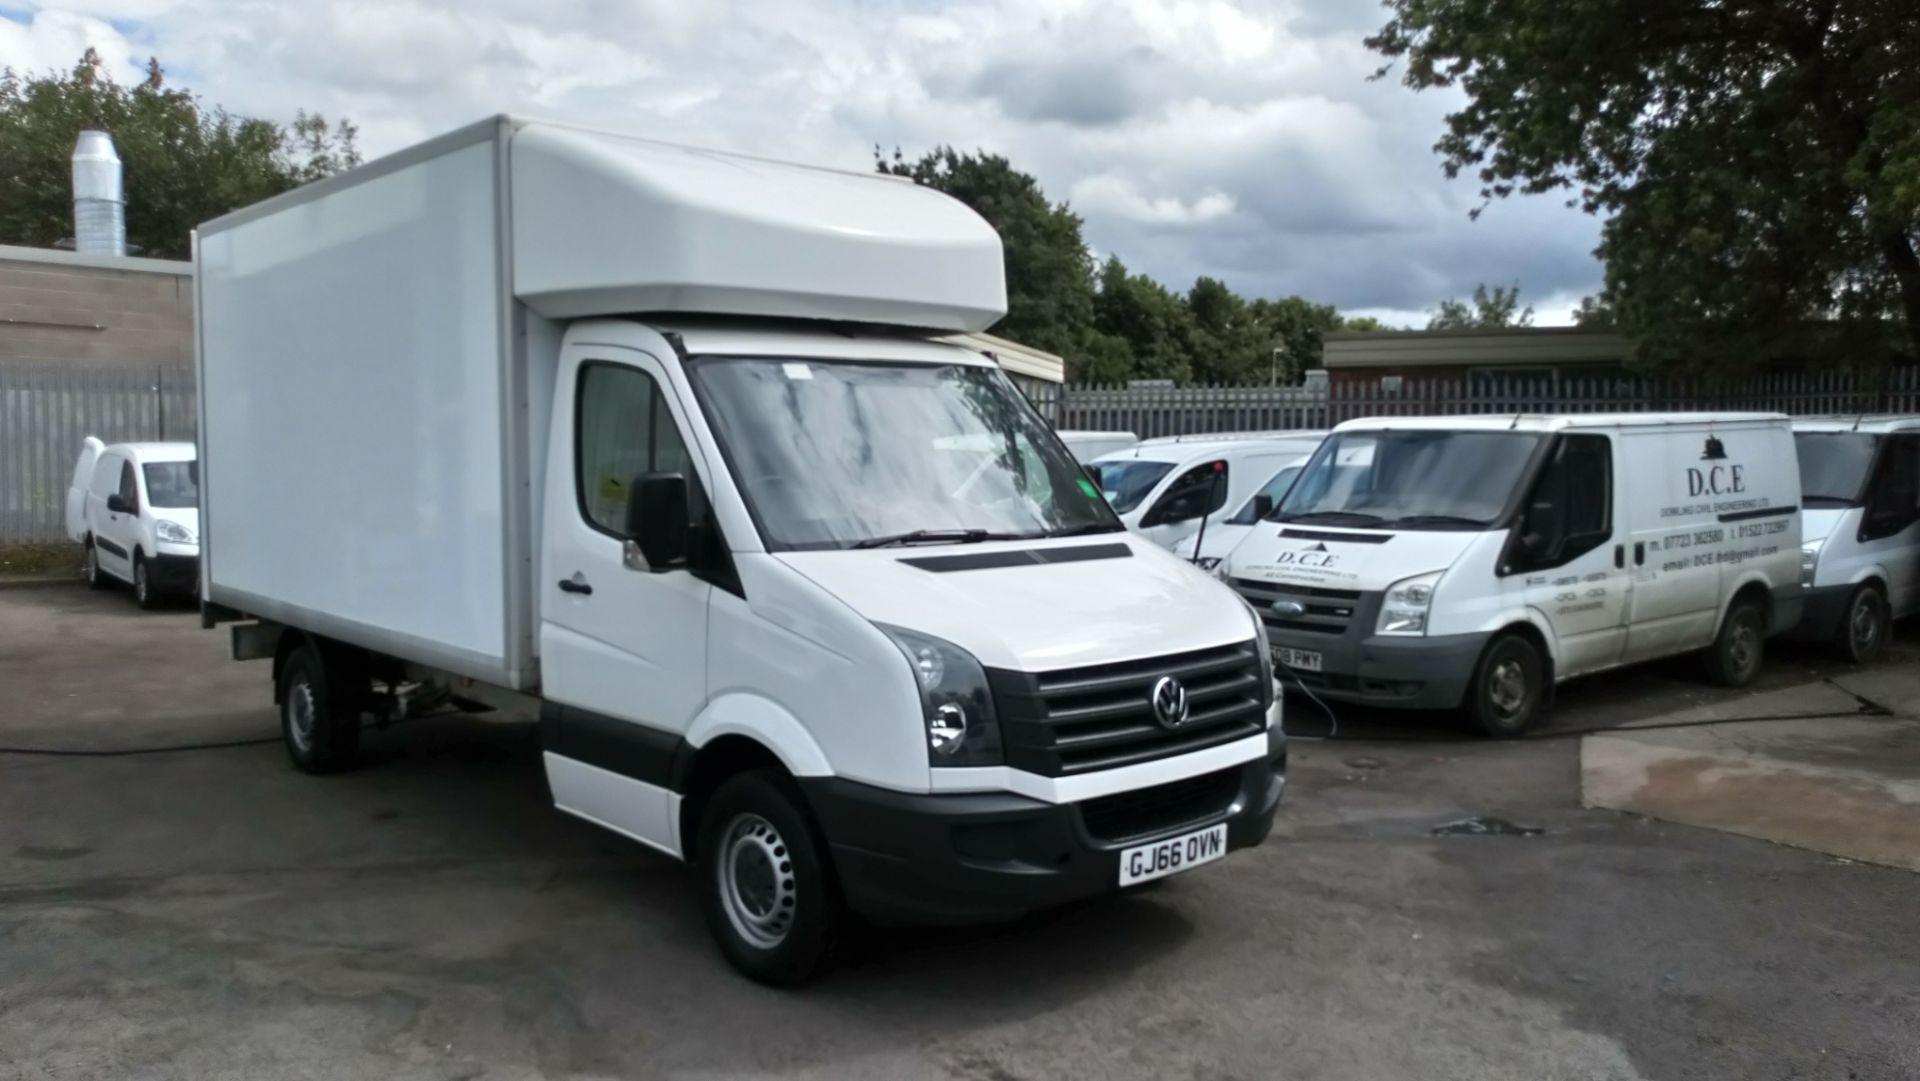 2016 Volkswagen Crafter 2.0 Tdi 136Ps Chassis Cab (GJ66OVN)